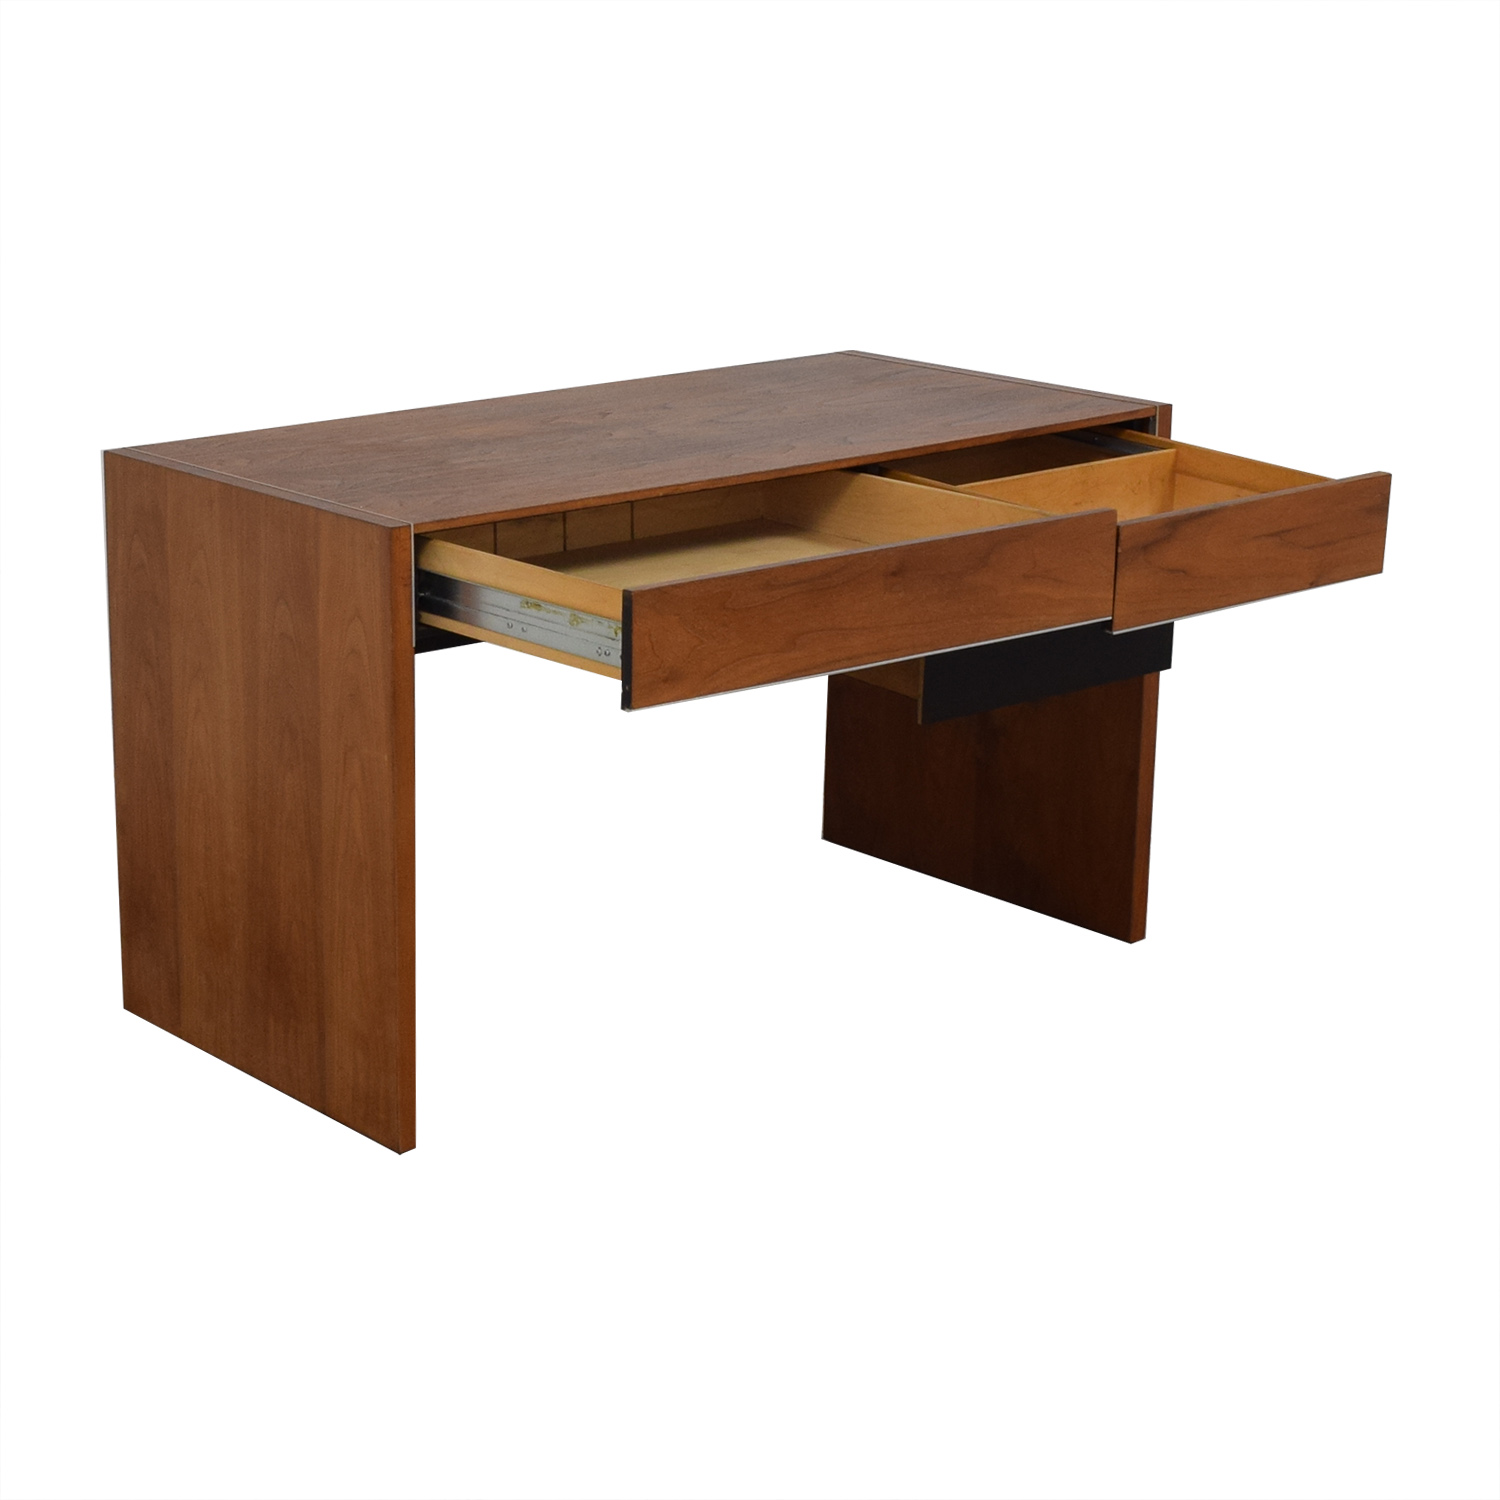 Glenn of California Glenn of California Baron Walnut Desk brown